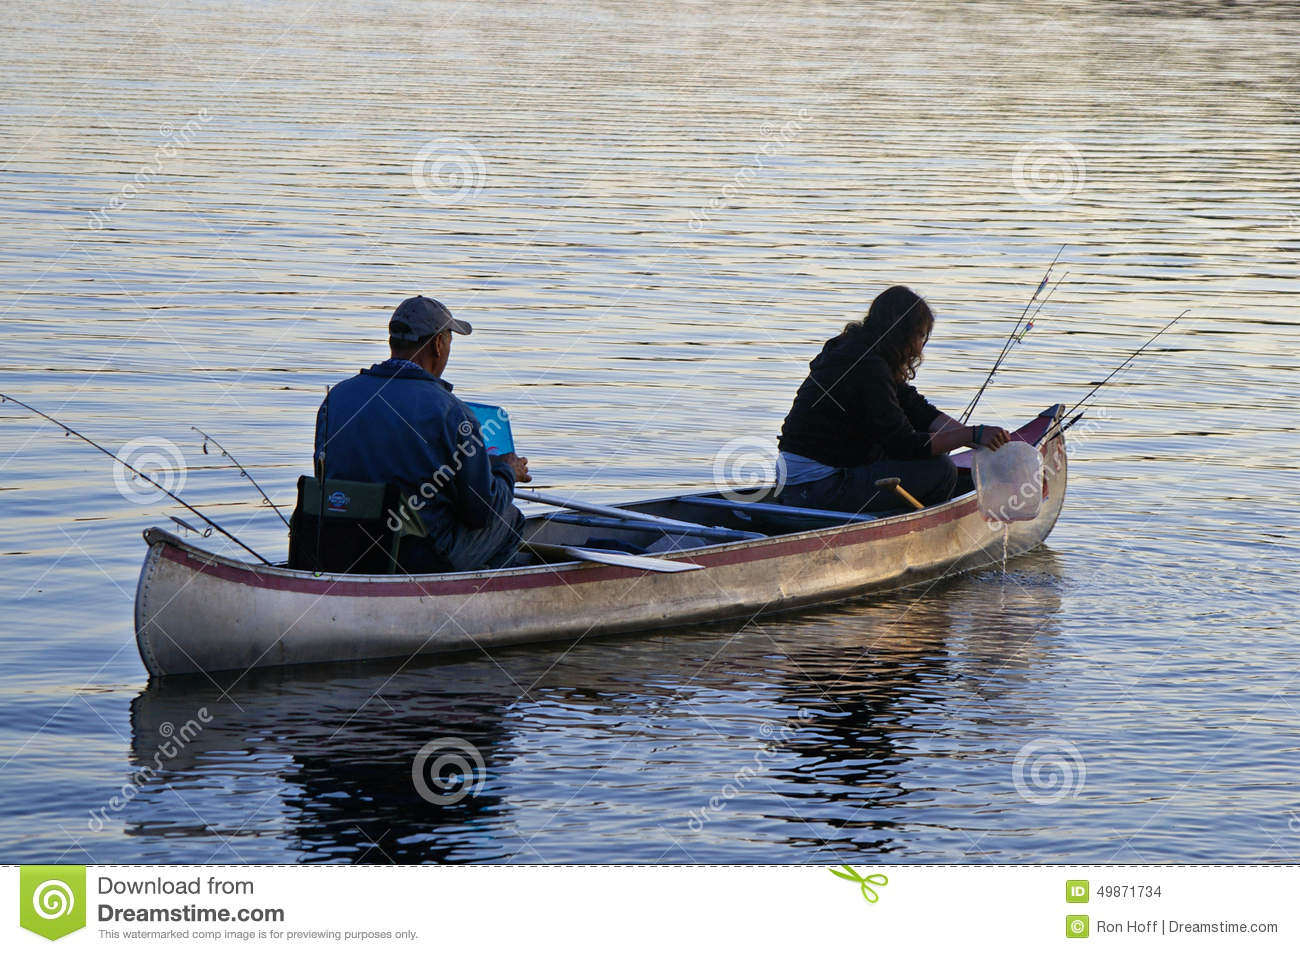 Fishing in the boundary waters canoe area editorial stock for Boundary waters fishing